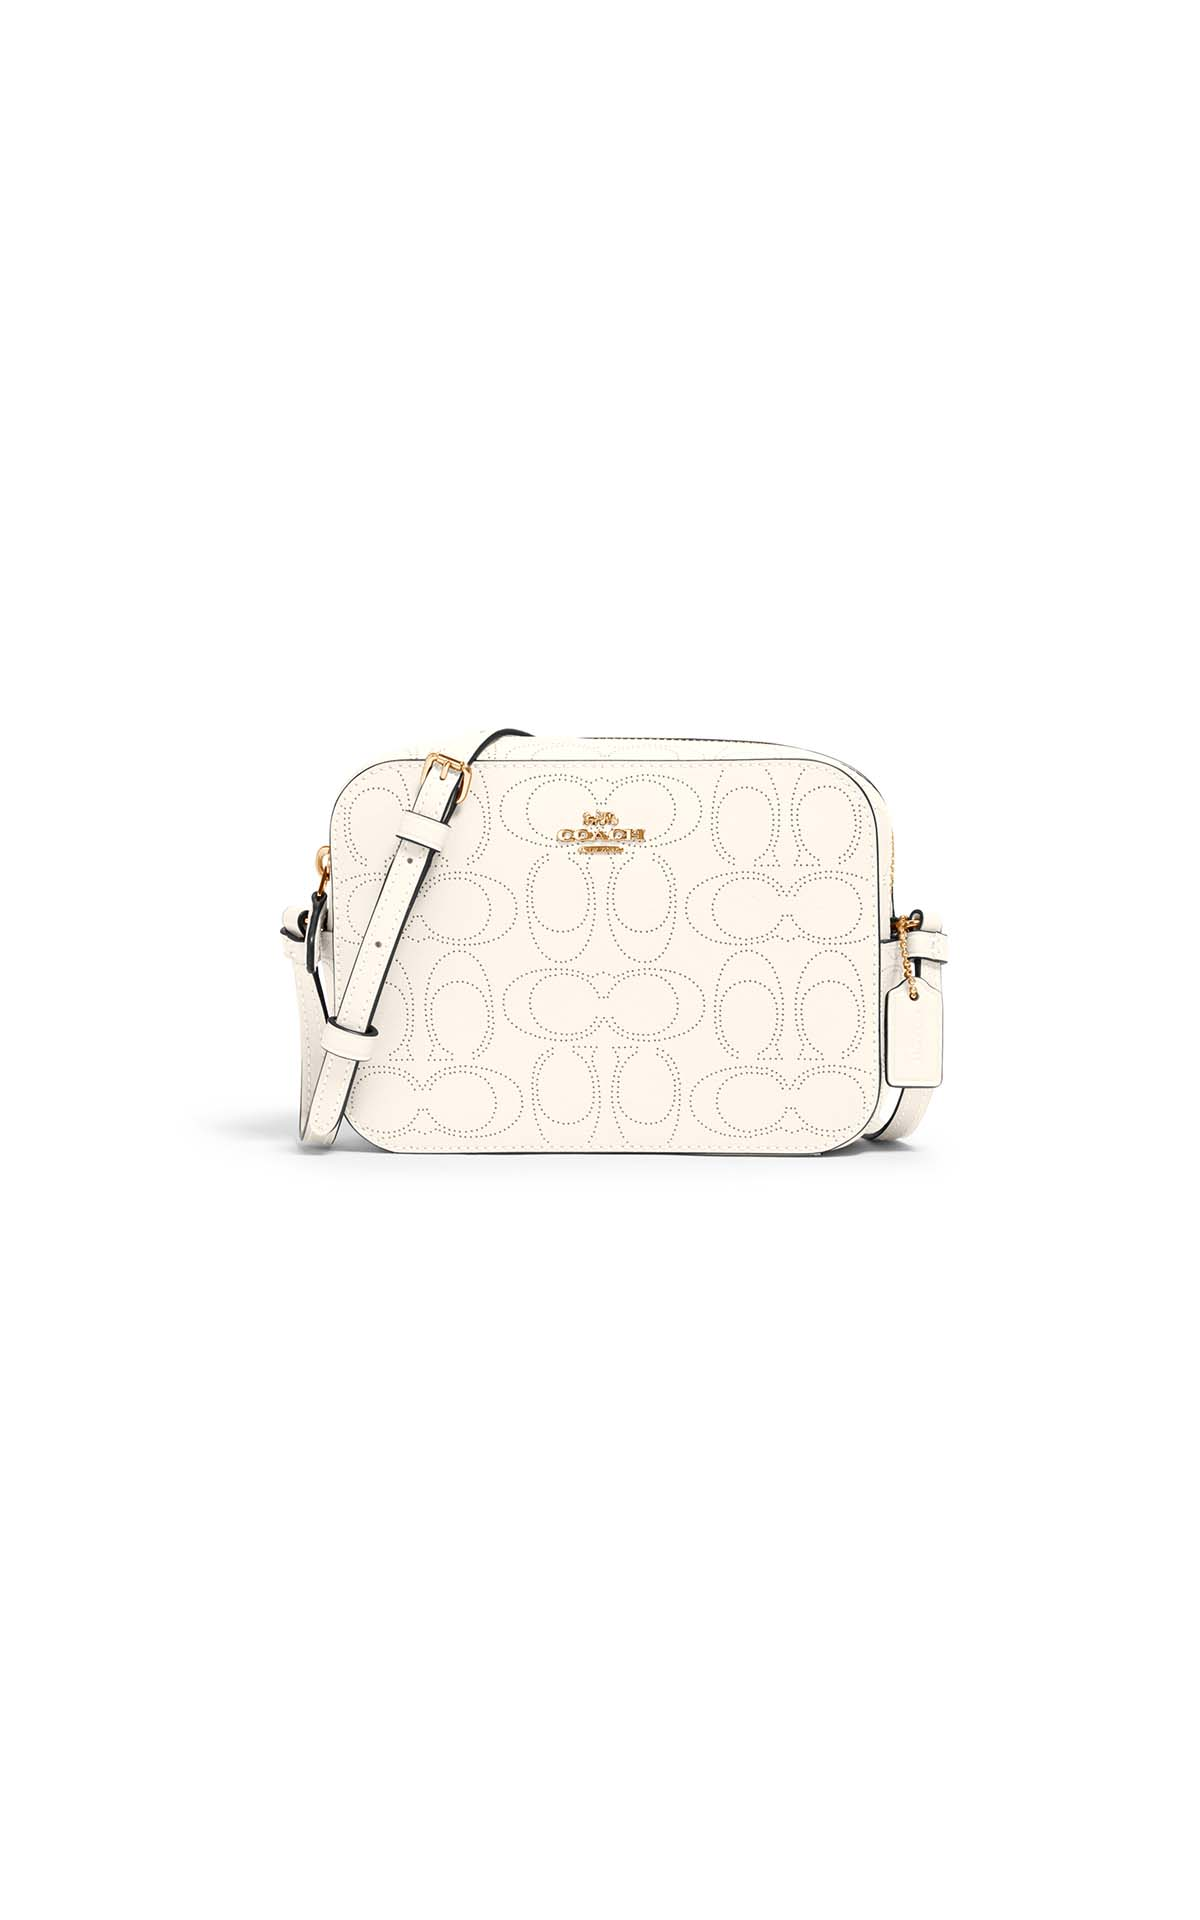 Coach Perforated mini camera bag in chalk at The Bicester Village Shopping Collection